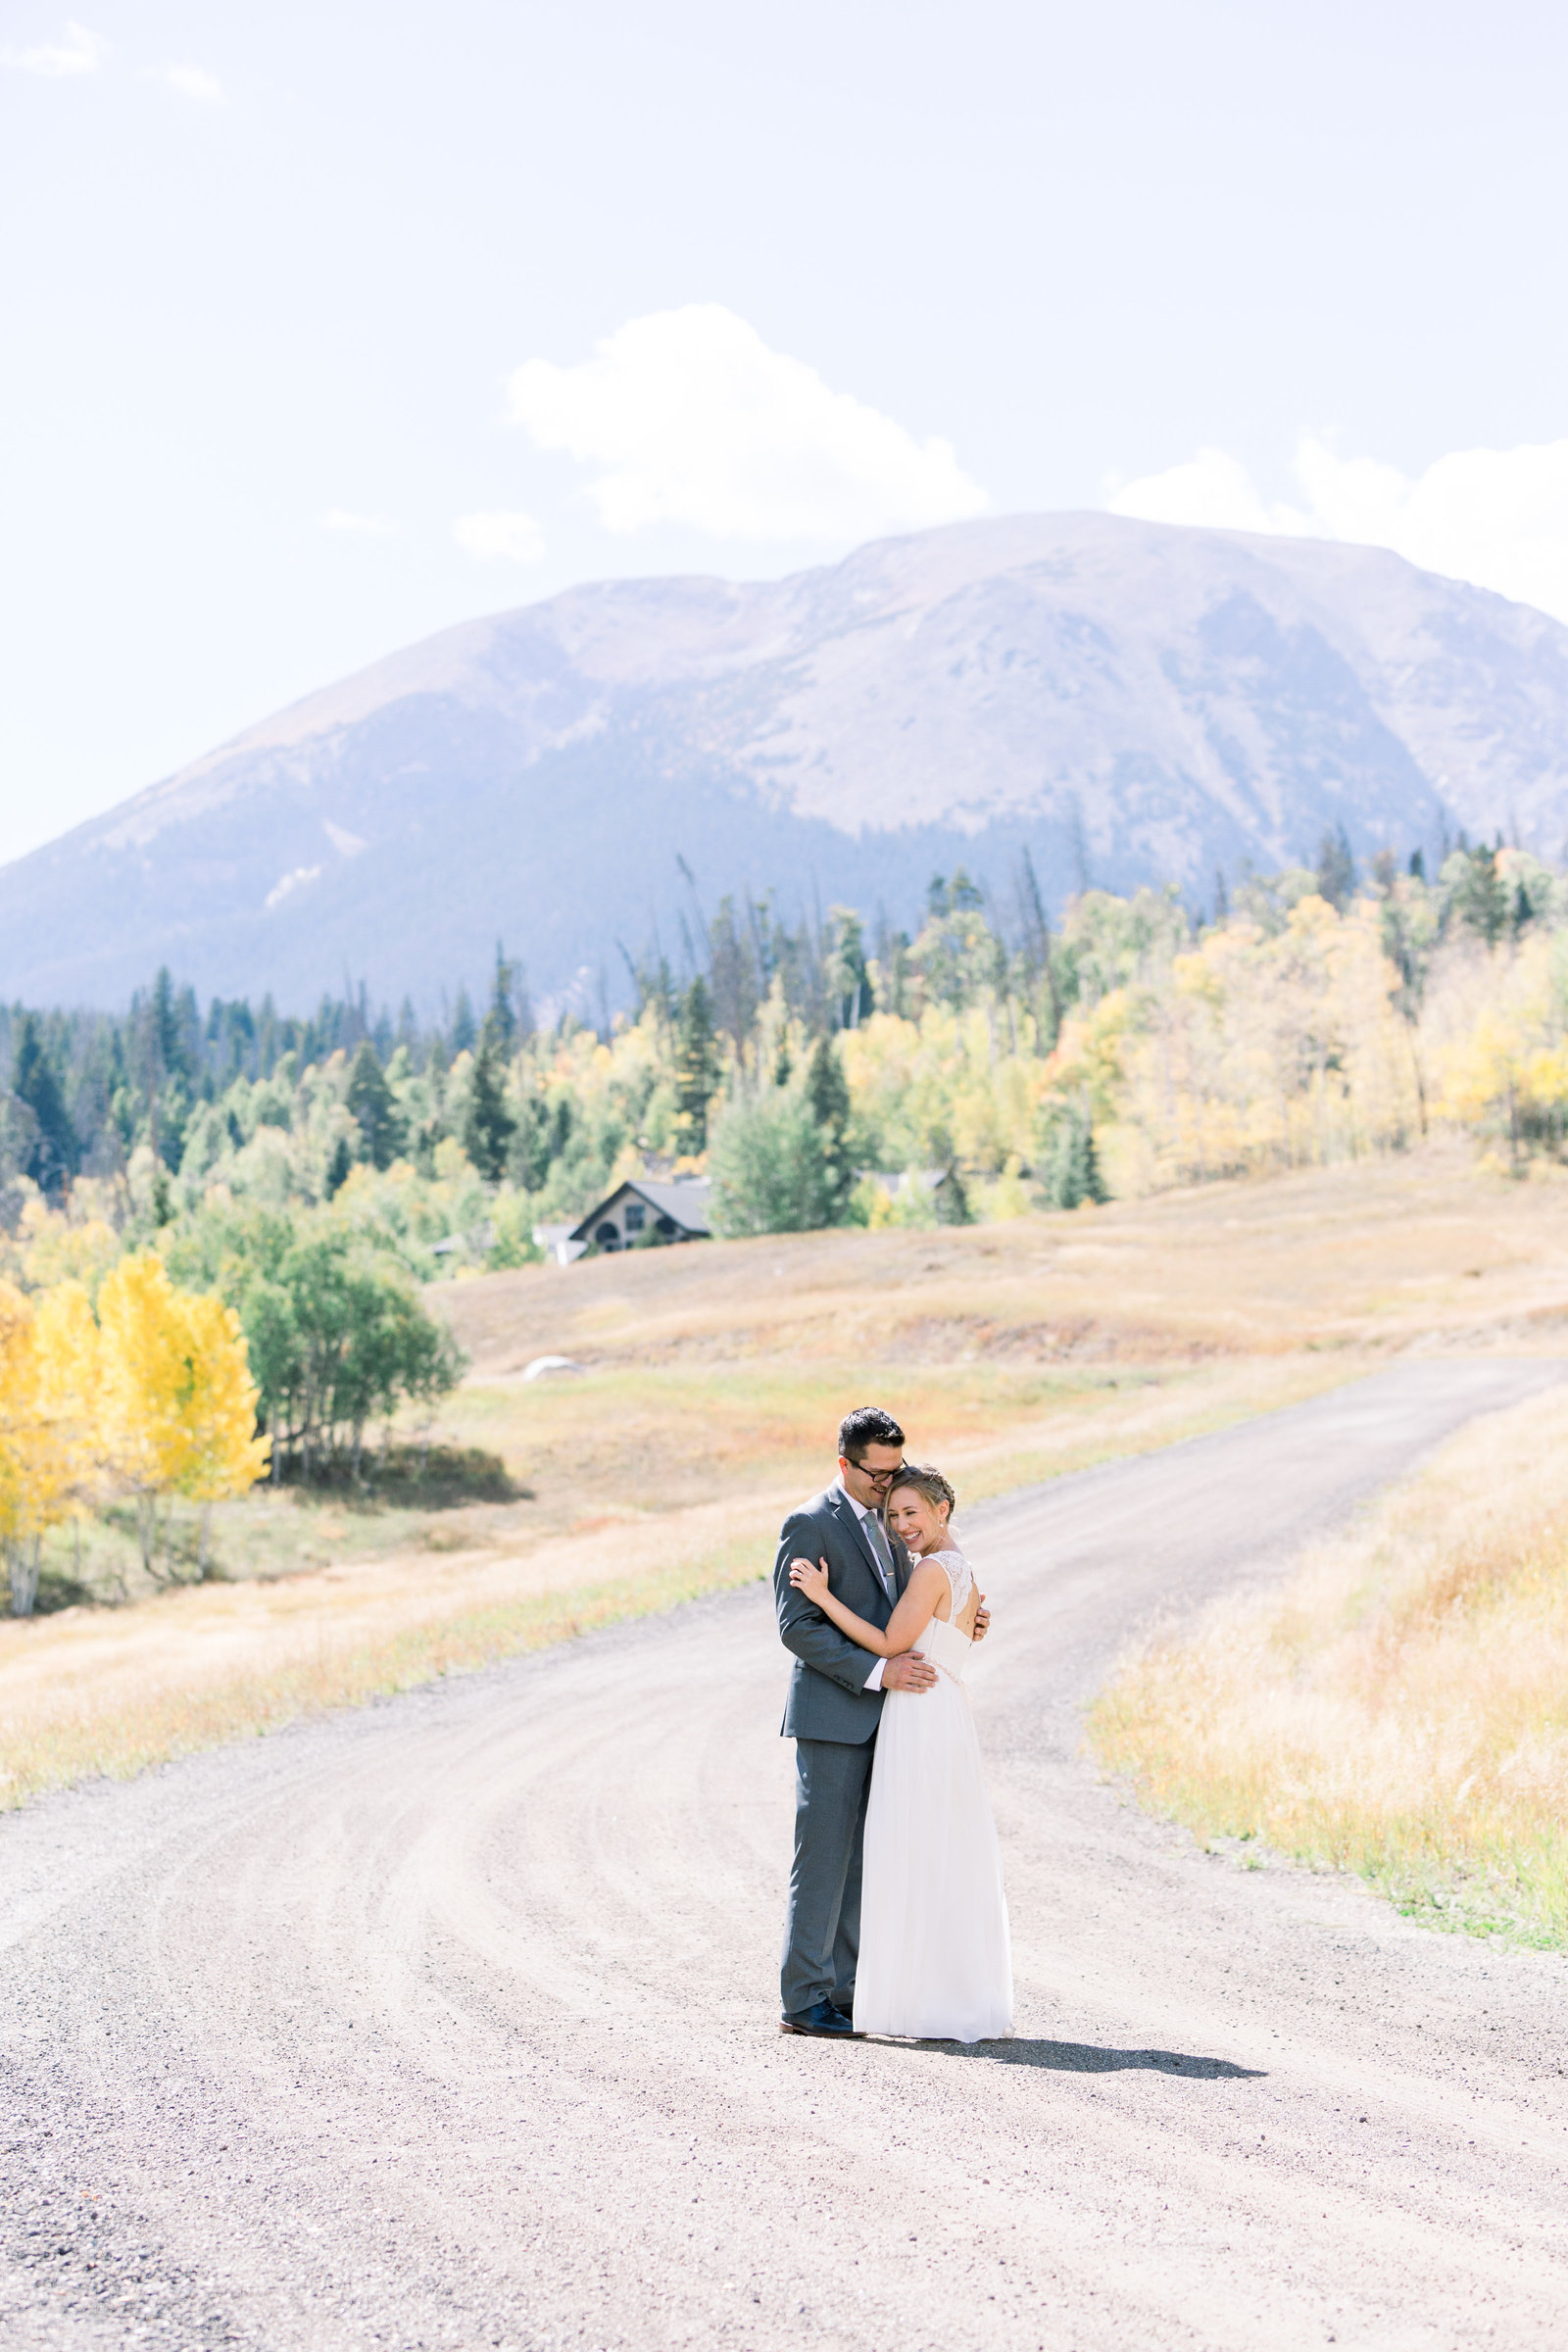 A small, intimate elopement in Lake Dillon, Colorado